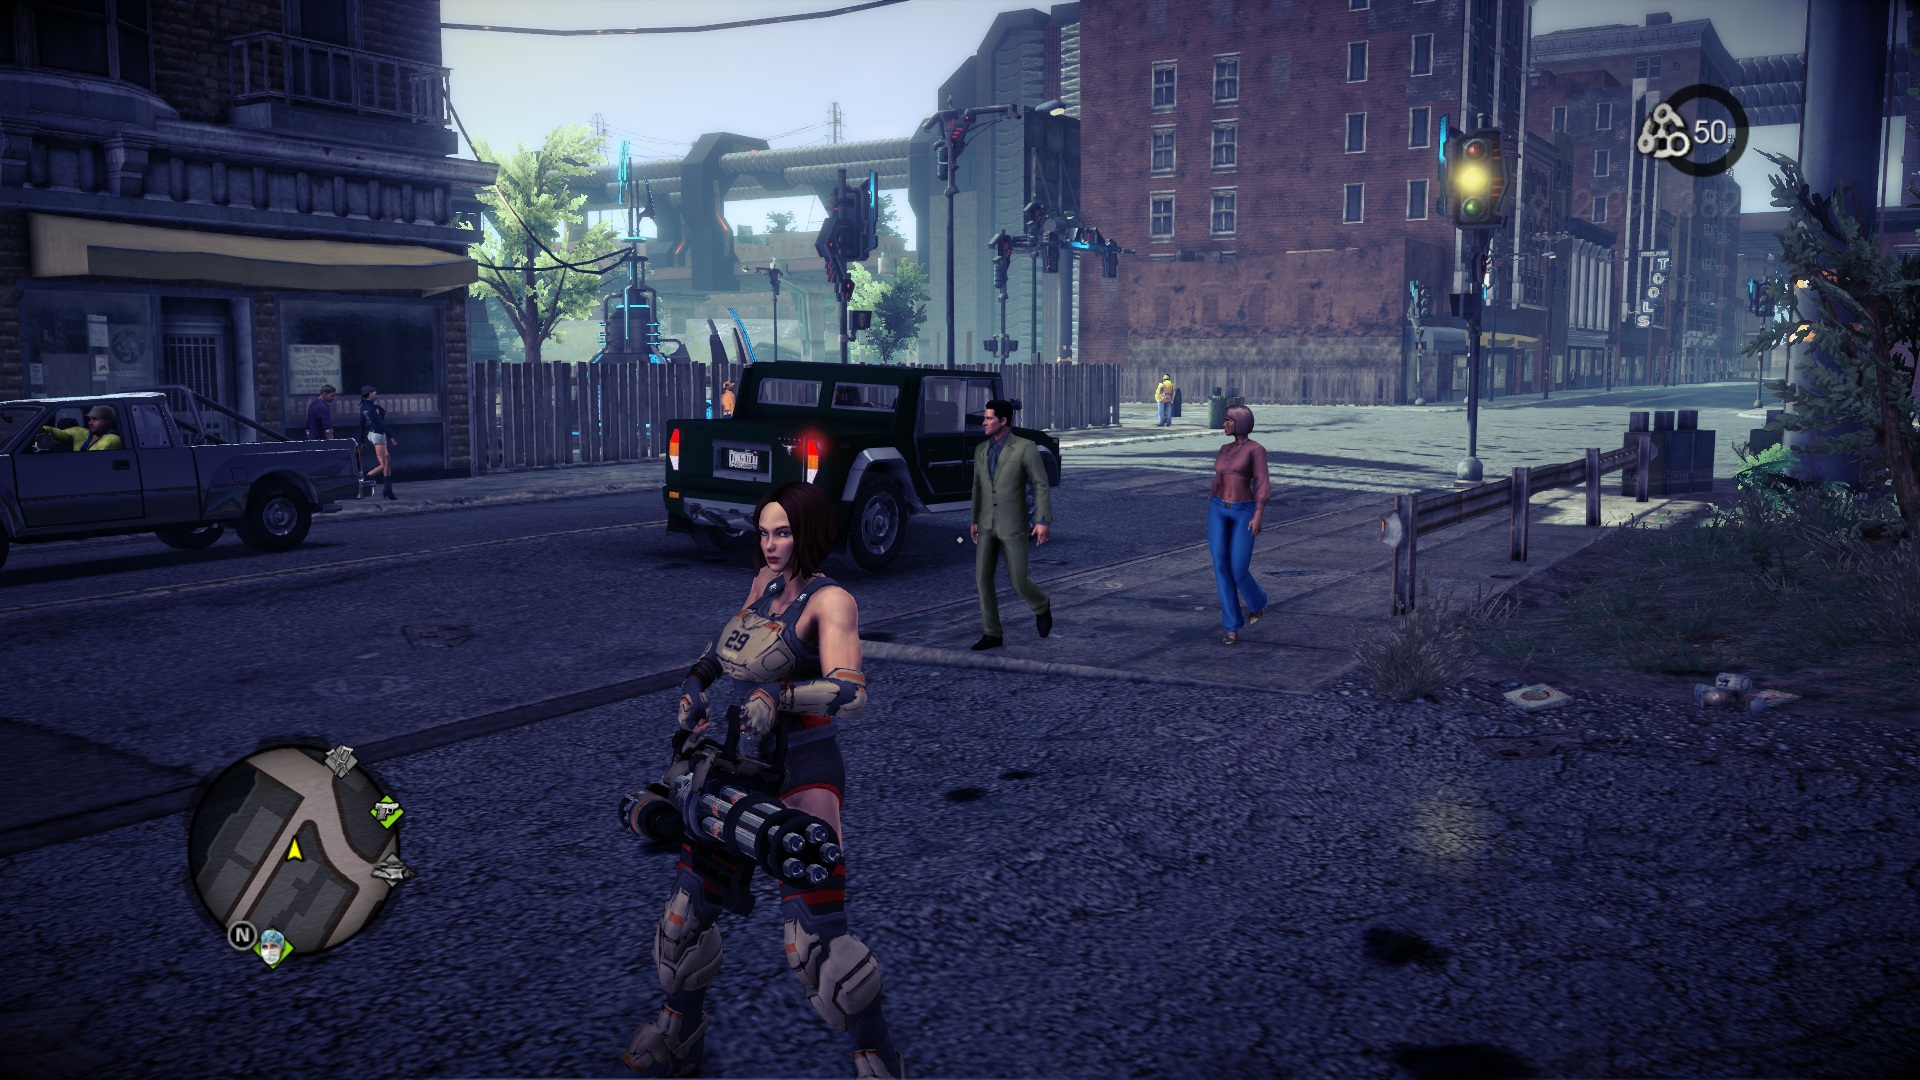 Saints Row IV 2019-02-10 20-43-40-86.jpg